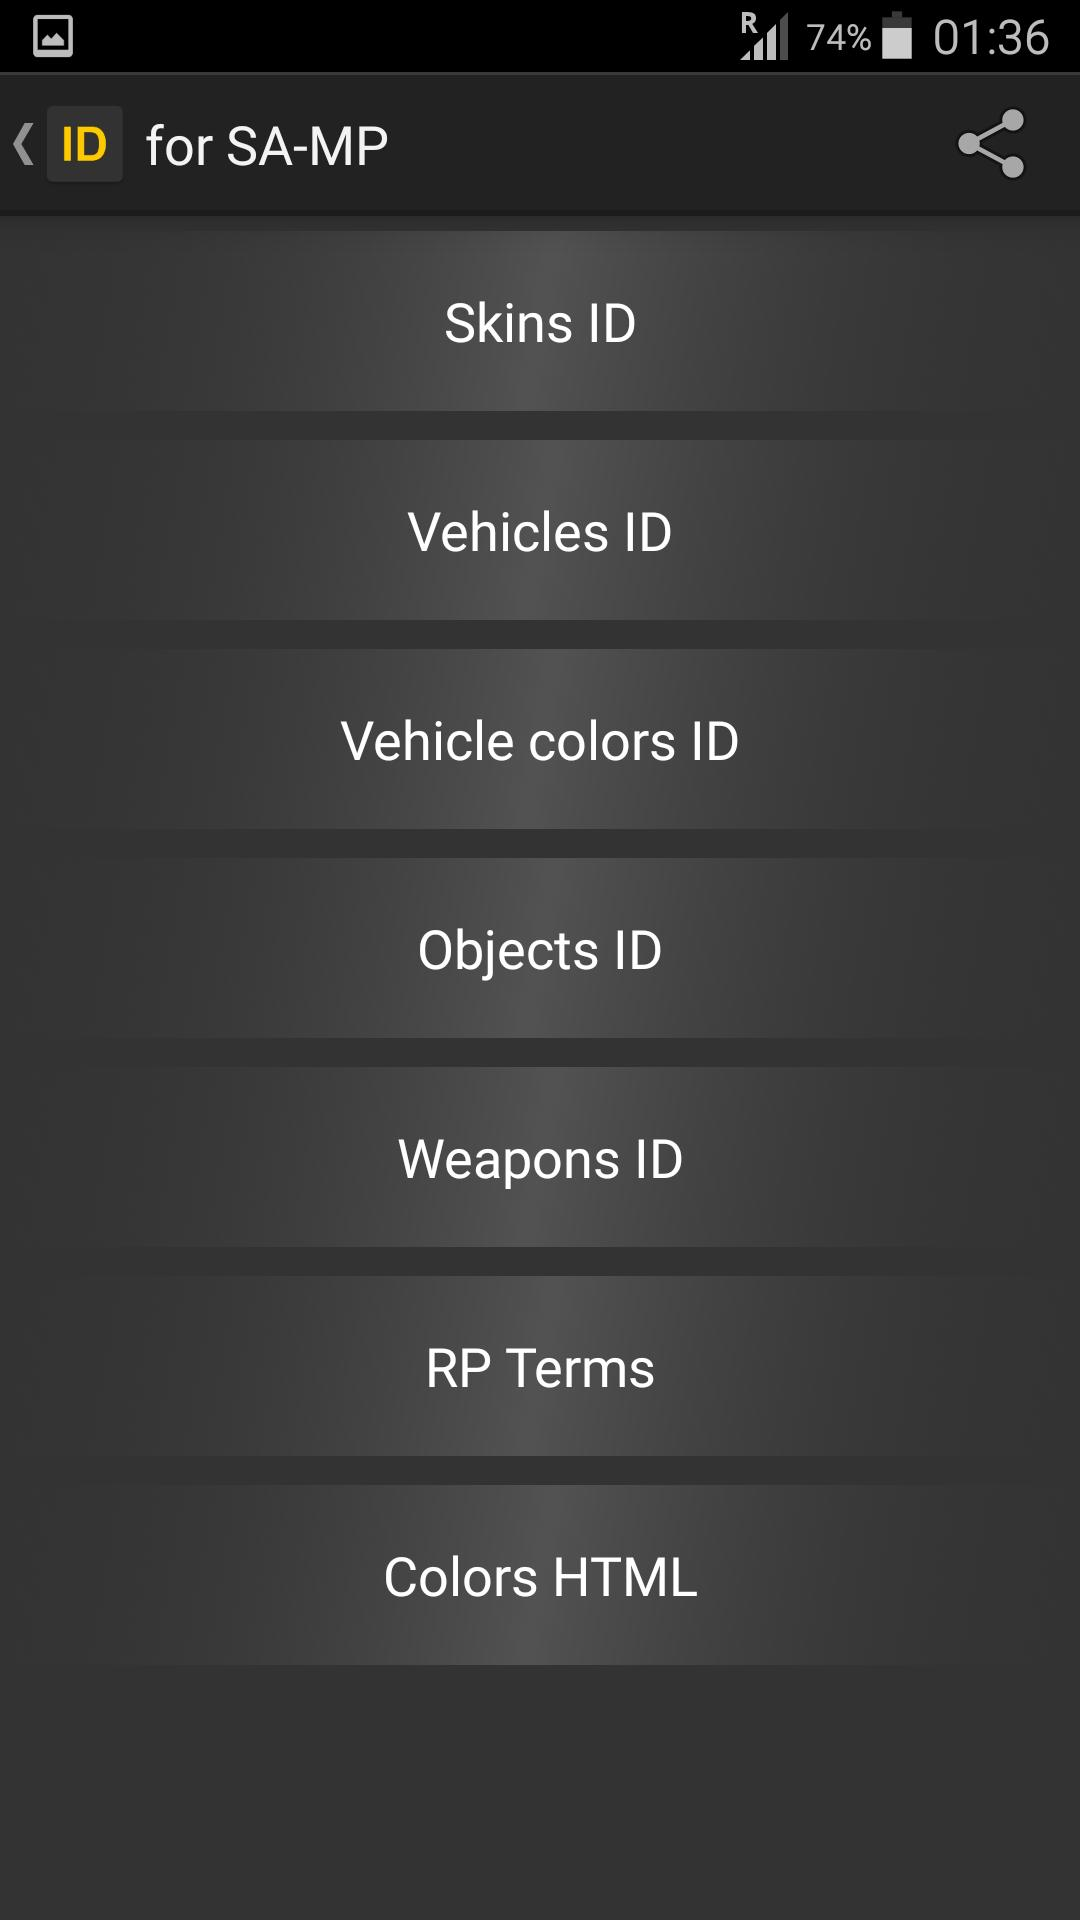 ID for SA-MP for Android - APK Download